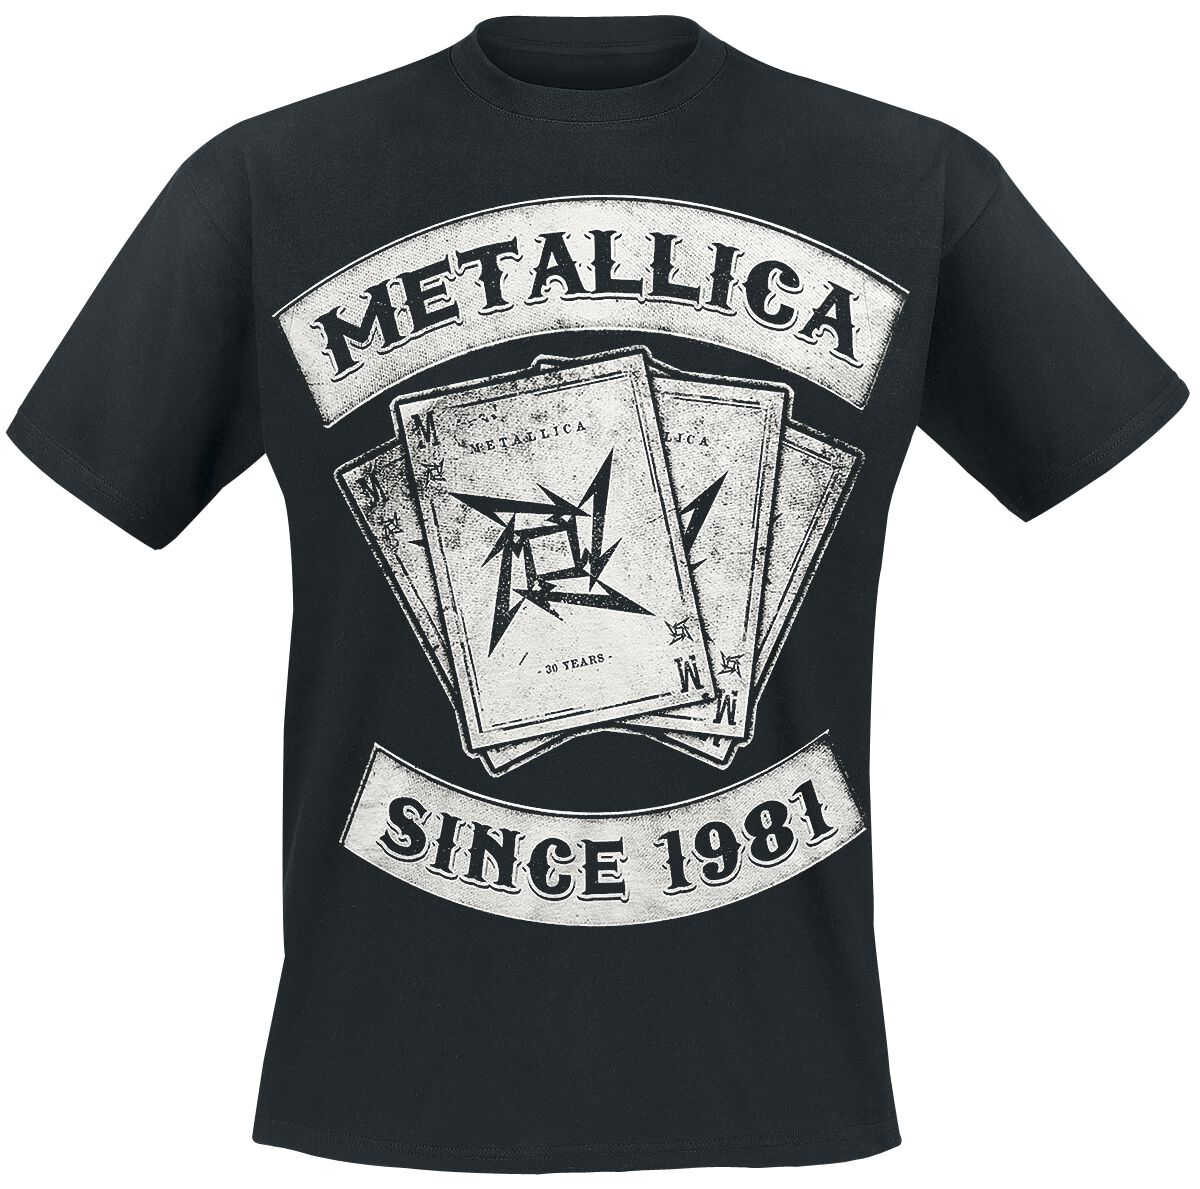 Image of   Metallica Dealer T-Shirt sort